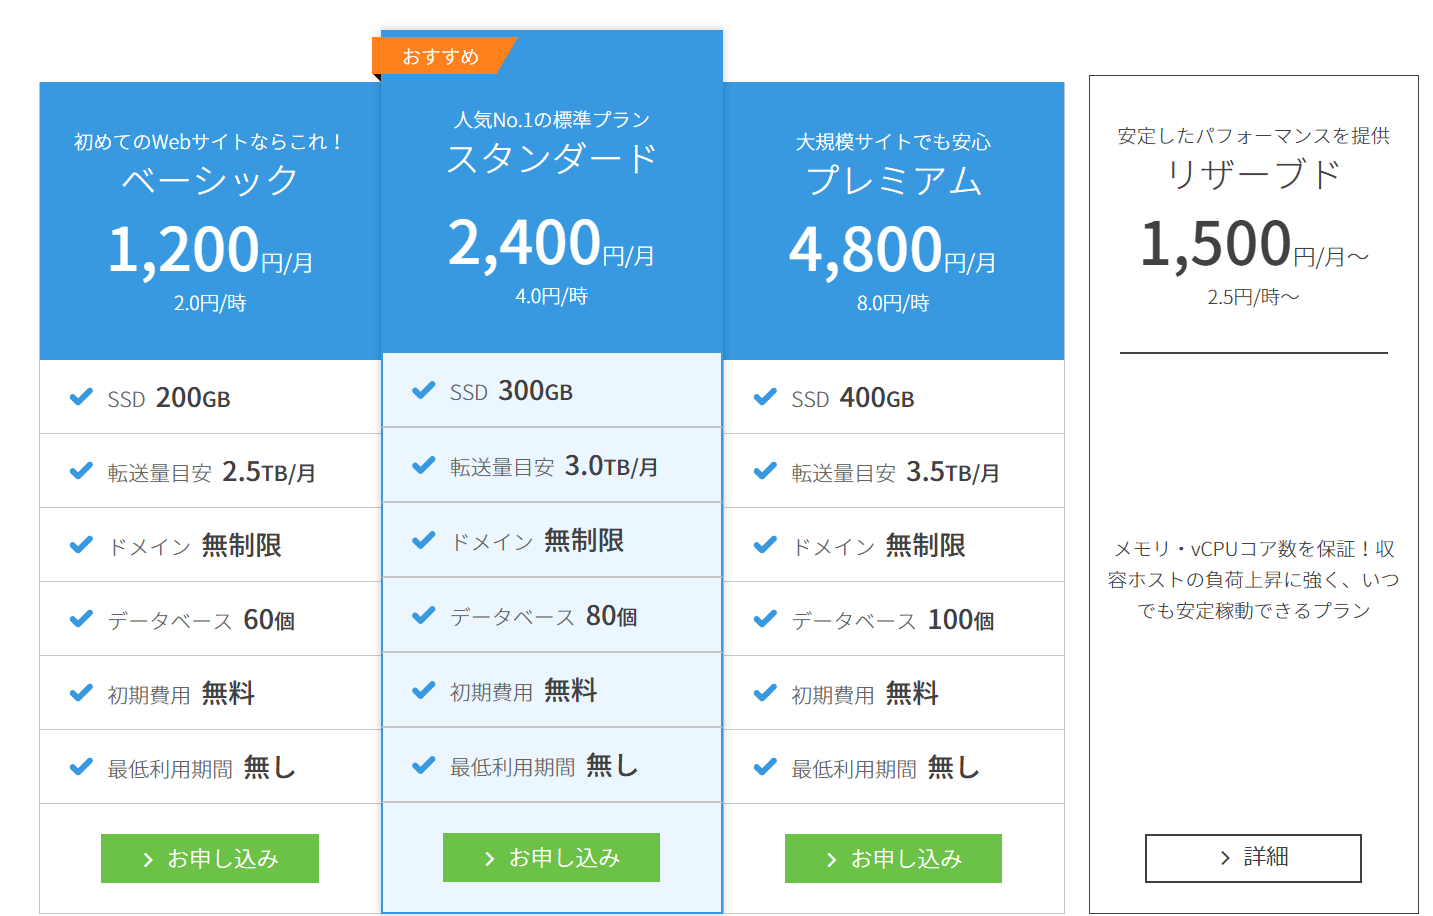 conoha wingの料金プラン